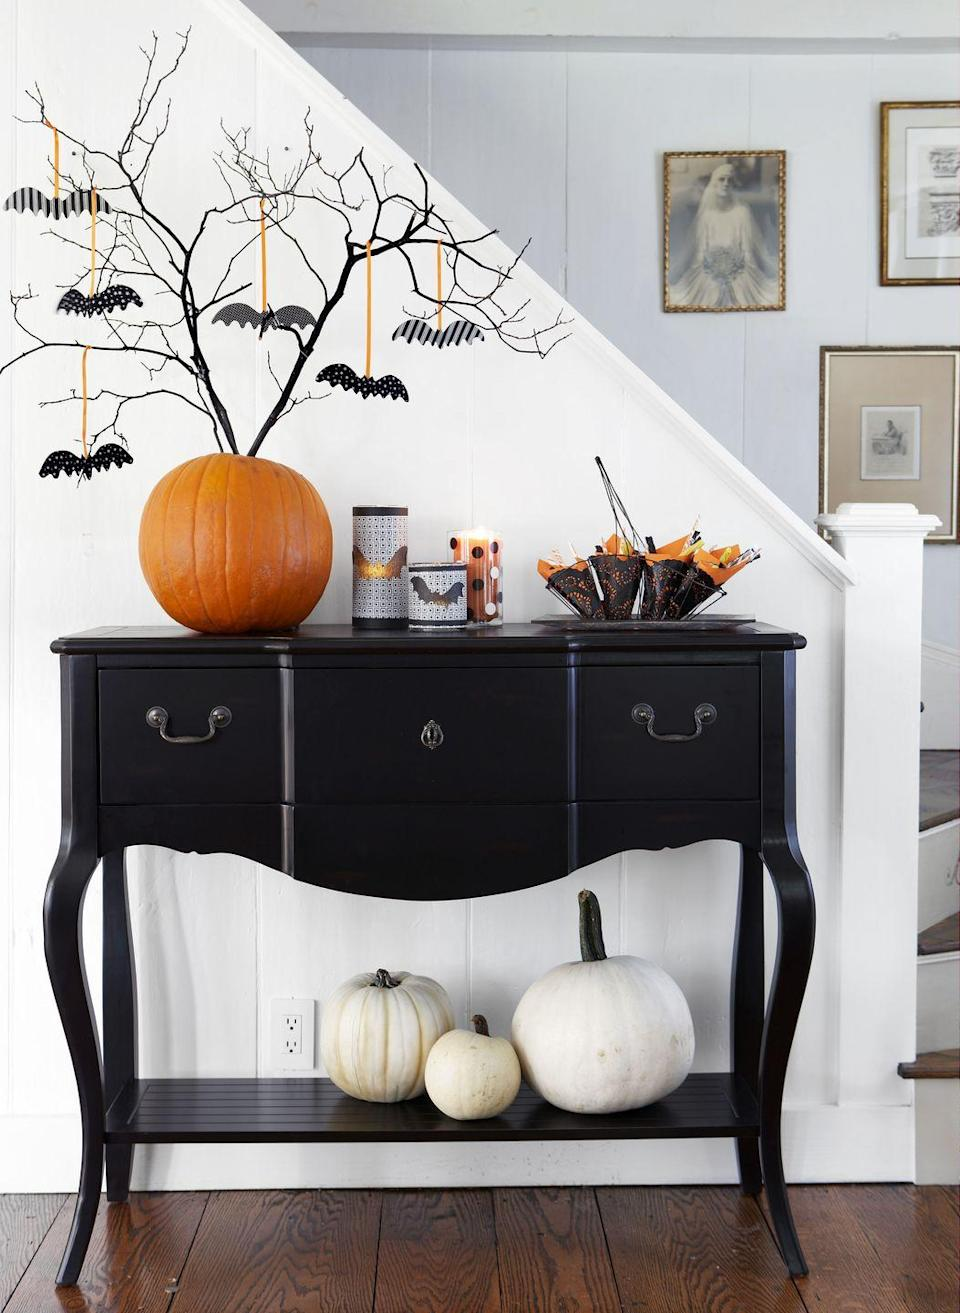 """<p>Perk up the foyer with a bevy of fluttering bats. Simply stick backyard branches into a plain pumpkin and hang a few spooky ornaments. </p><p><em><a href=""""https://www.goodhousekeeping.com/holidays/halloween-ideas/g421/halloween-decorating-ideas-1007/"""" rel=""""nofollow noopener"""" target=""""_blank"""" data-ylk=""""slk:Get the tutorial »"""" class=""""link rapid-noclick-resp"""">Get the tutorial »</a></em></p>"""